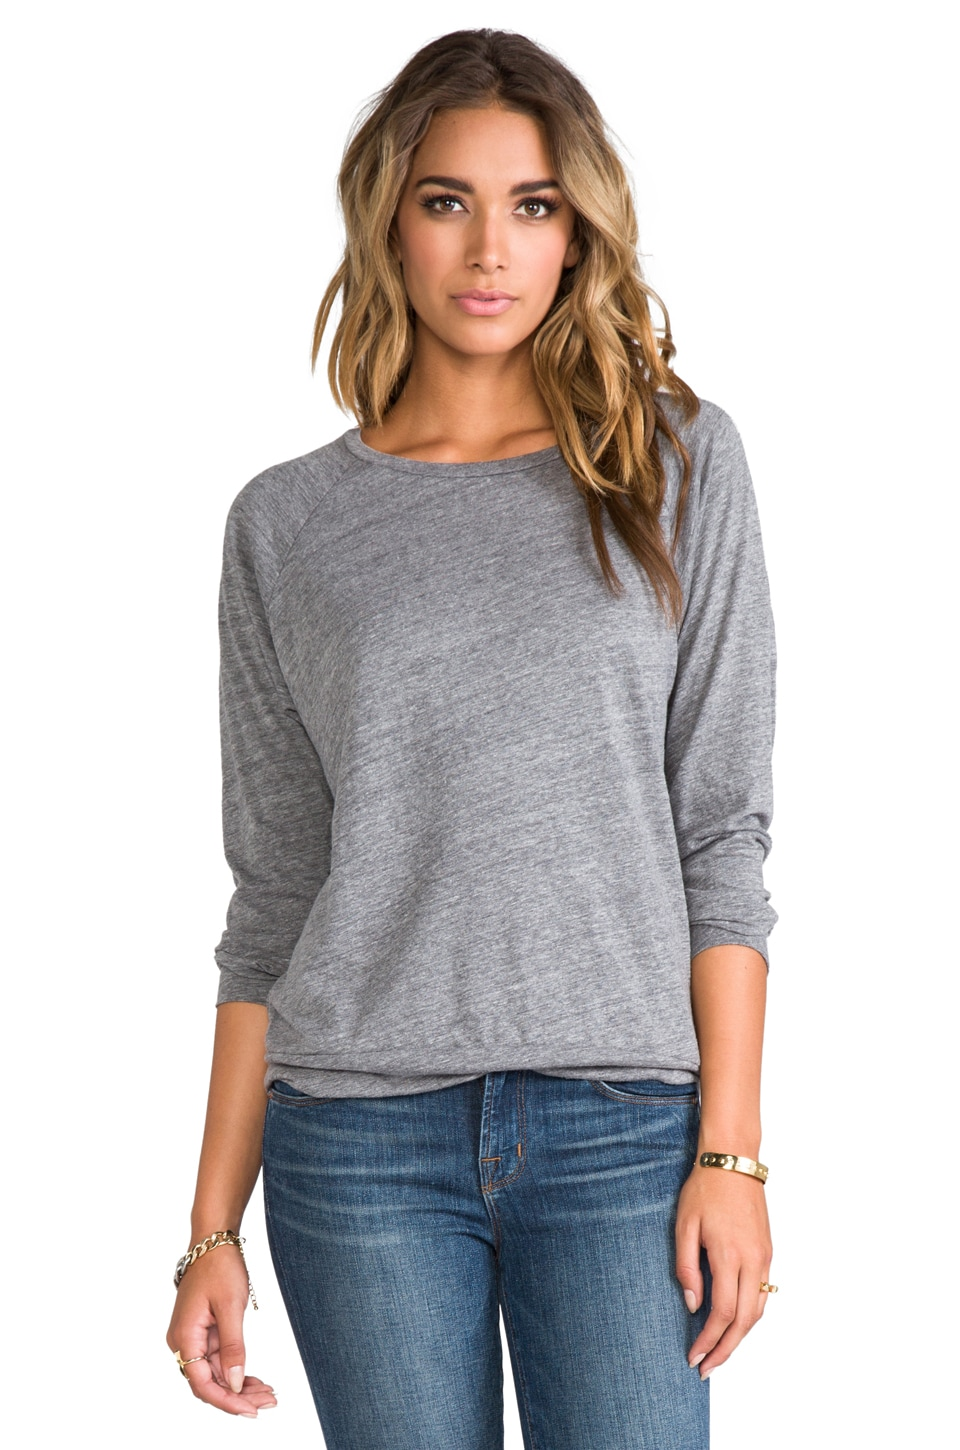 A Fine Line Mona Long Sleeve in Heather Grey